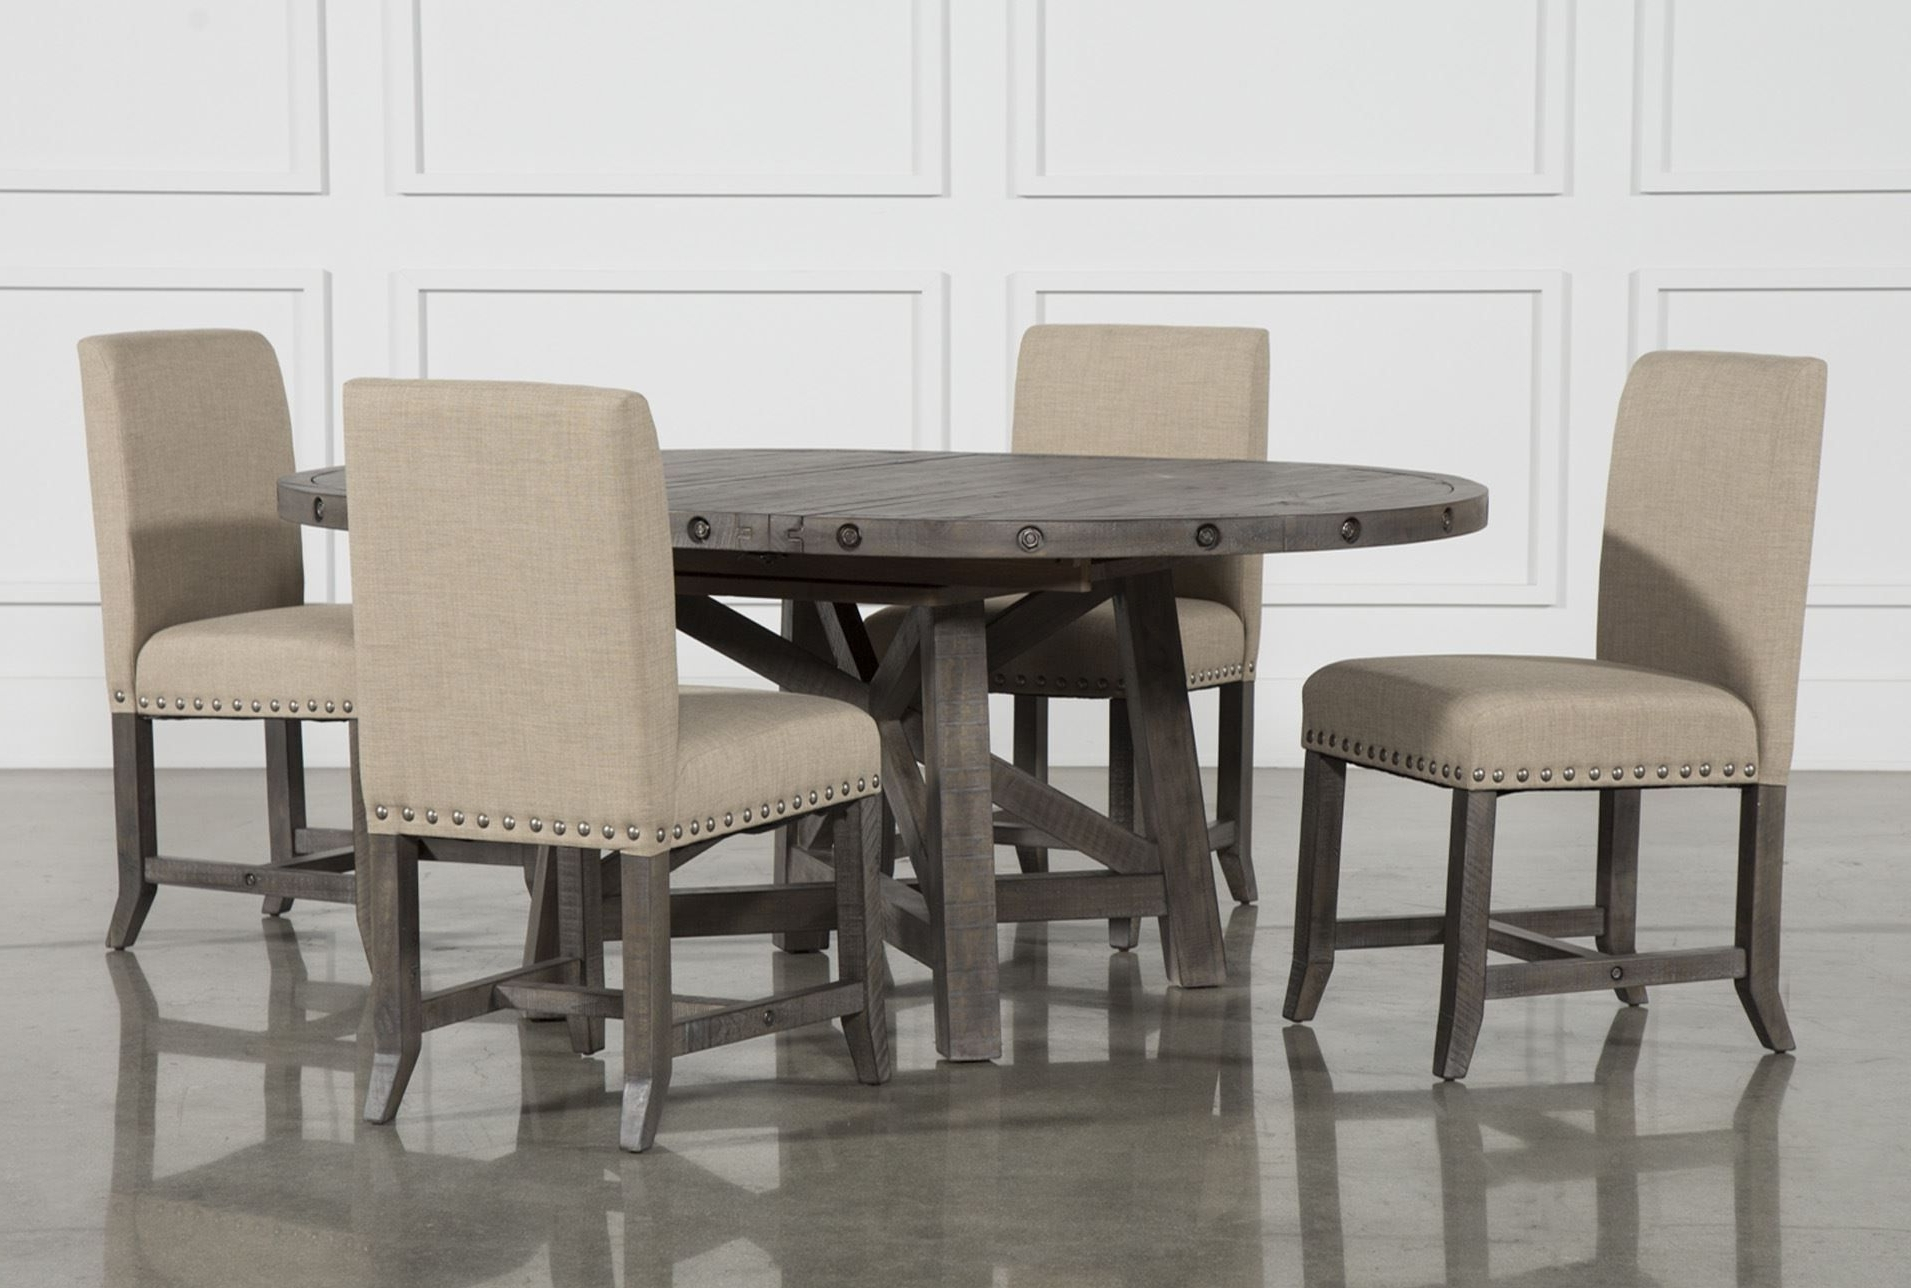 2018 Jaxon Grey 5 Piece Round Extension Dining Set W/upholstered Chairs Pertaining To Parquet 7 Piece Dining Sets (View 12 of 25)